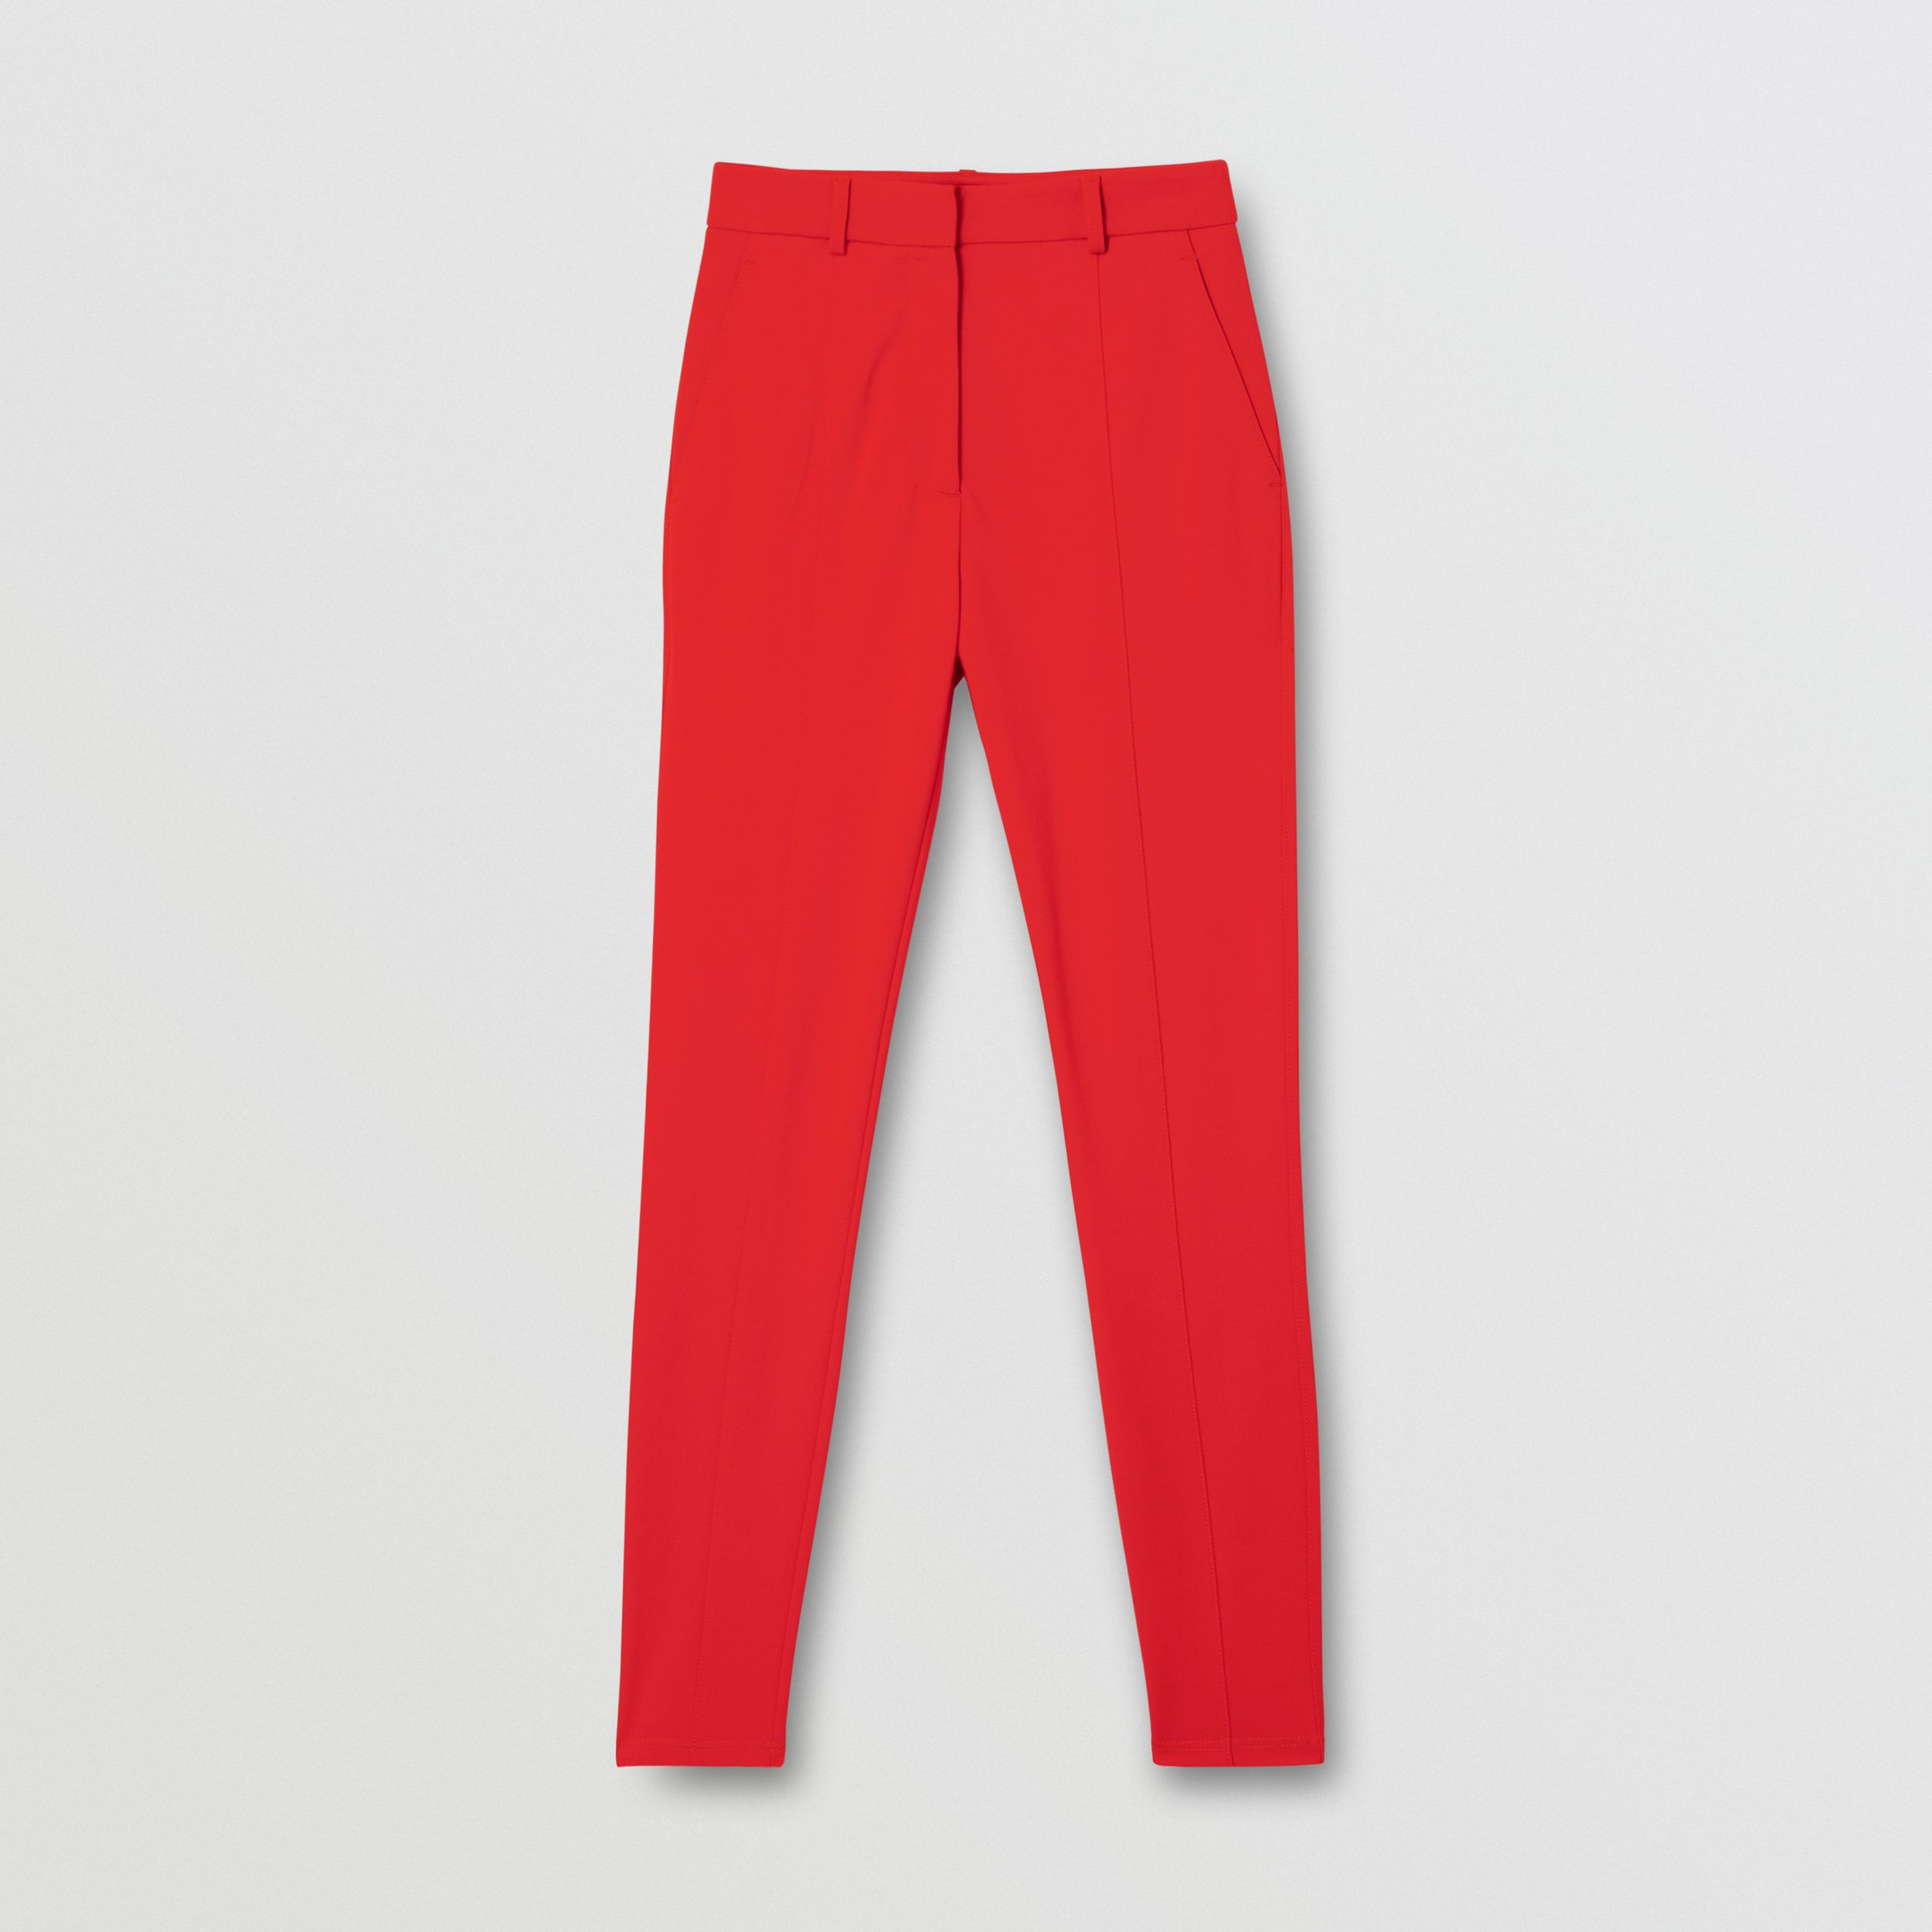 Stretch Jersey Jodhpurs in Bright Red - Women | Burberry - 3